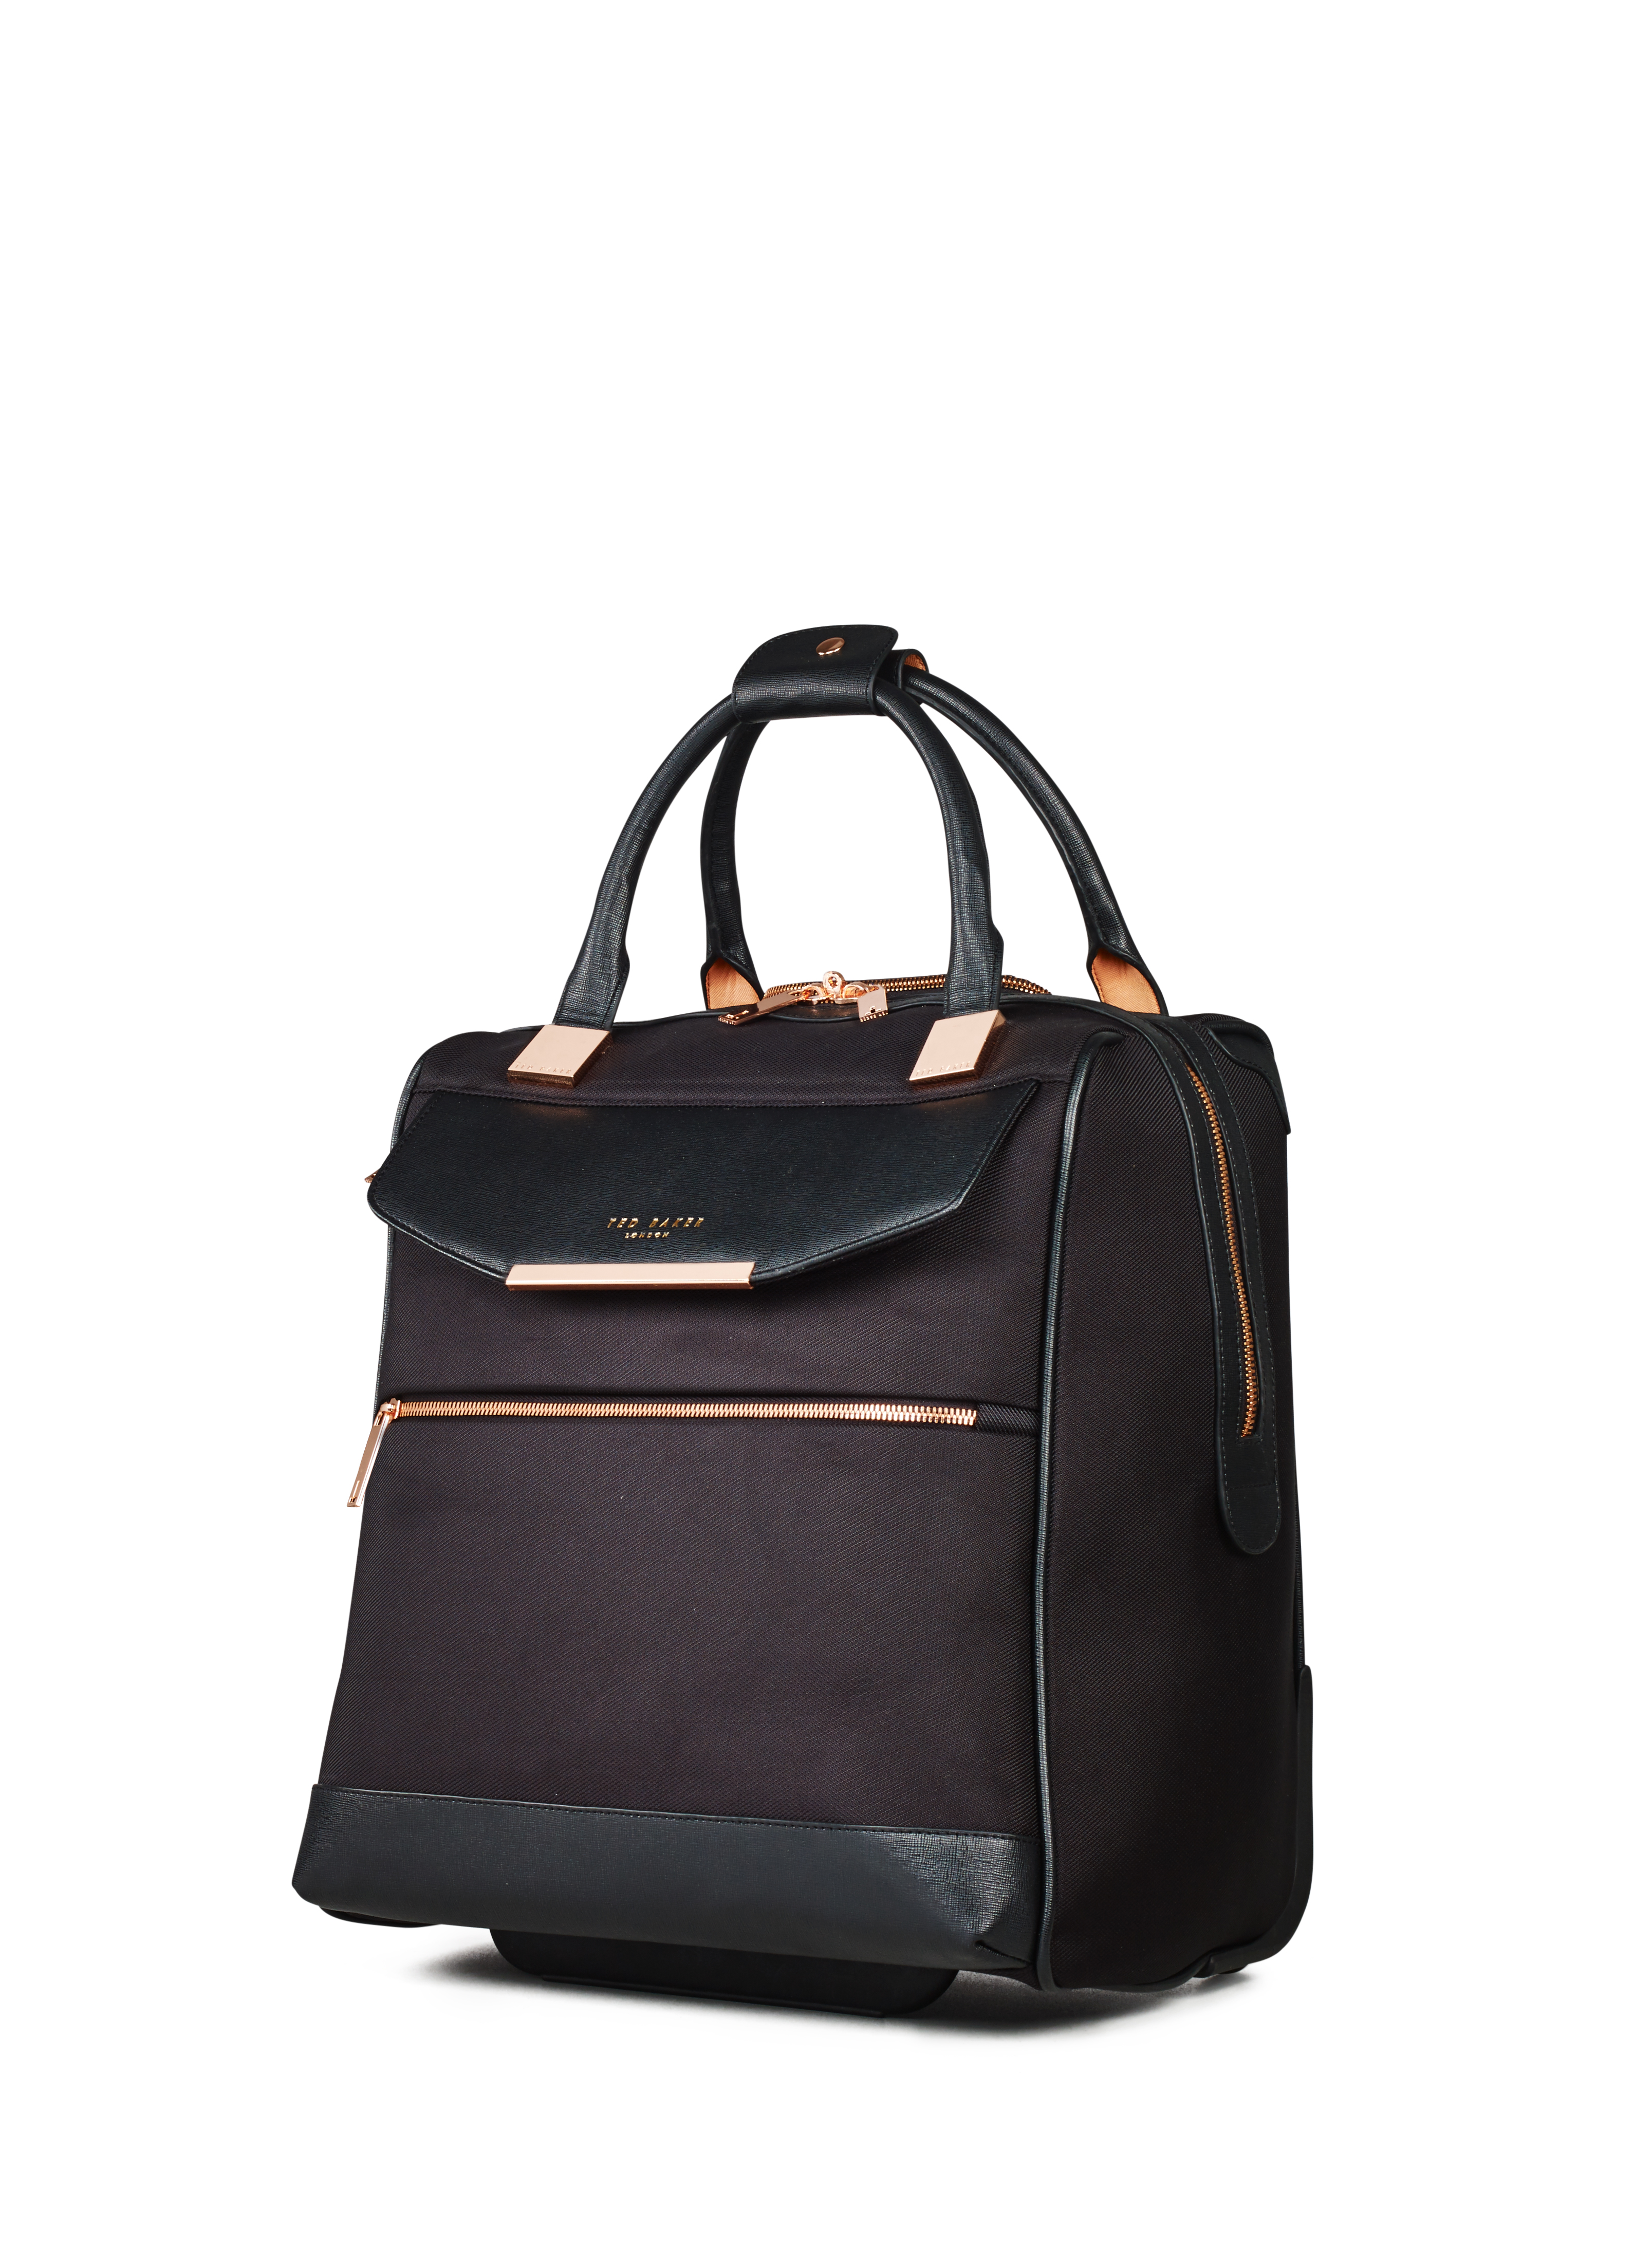 74cfd587ad6cfd TBW5009001 581aee94fd561f11e074b56a 18437119 20107802. ted baker womens  softside business trolley   laptop bags ...